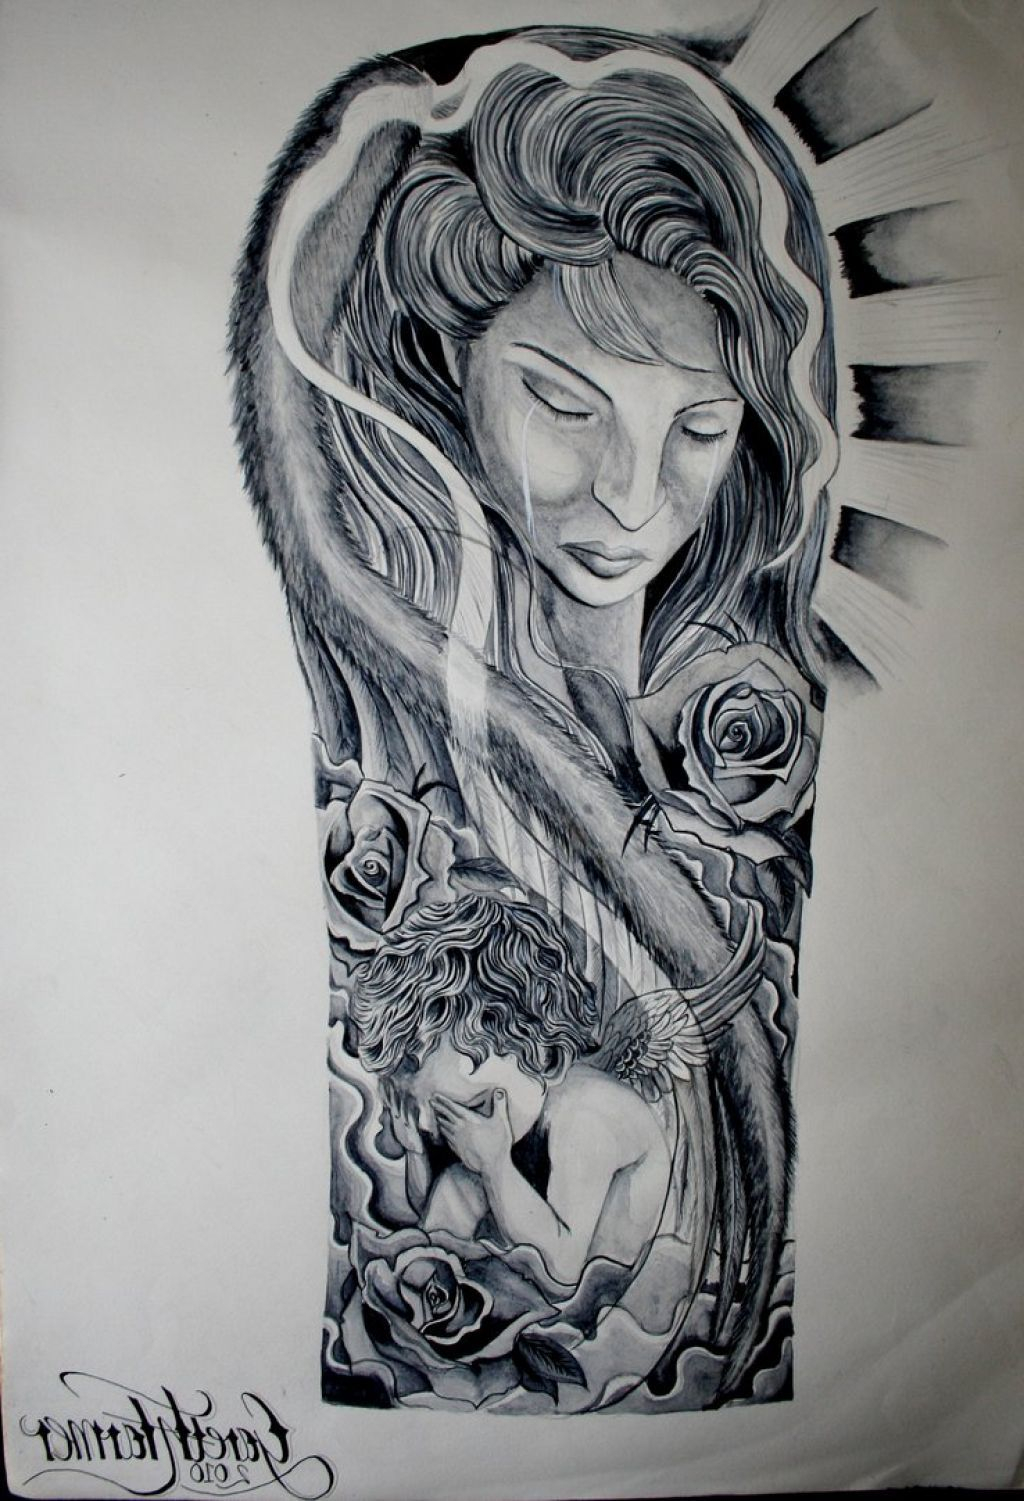 Arm Sleeve Tattoo Sketches Arm Tattoo Sites,Firefighter Tattoo Designs